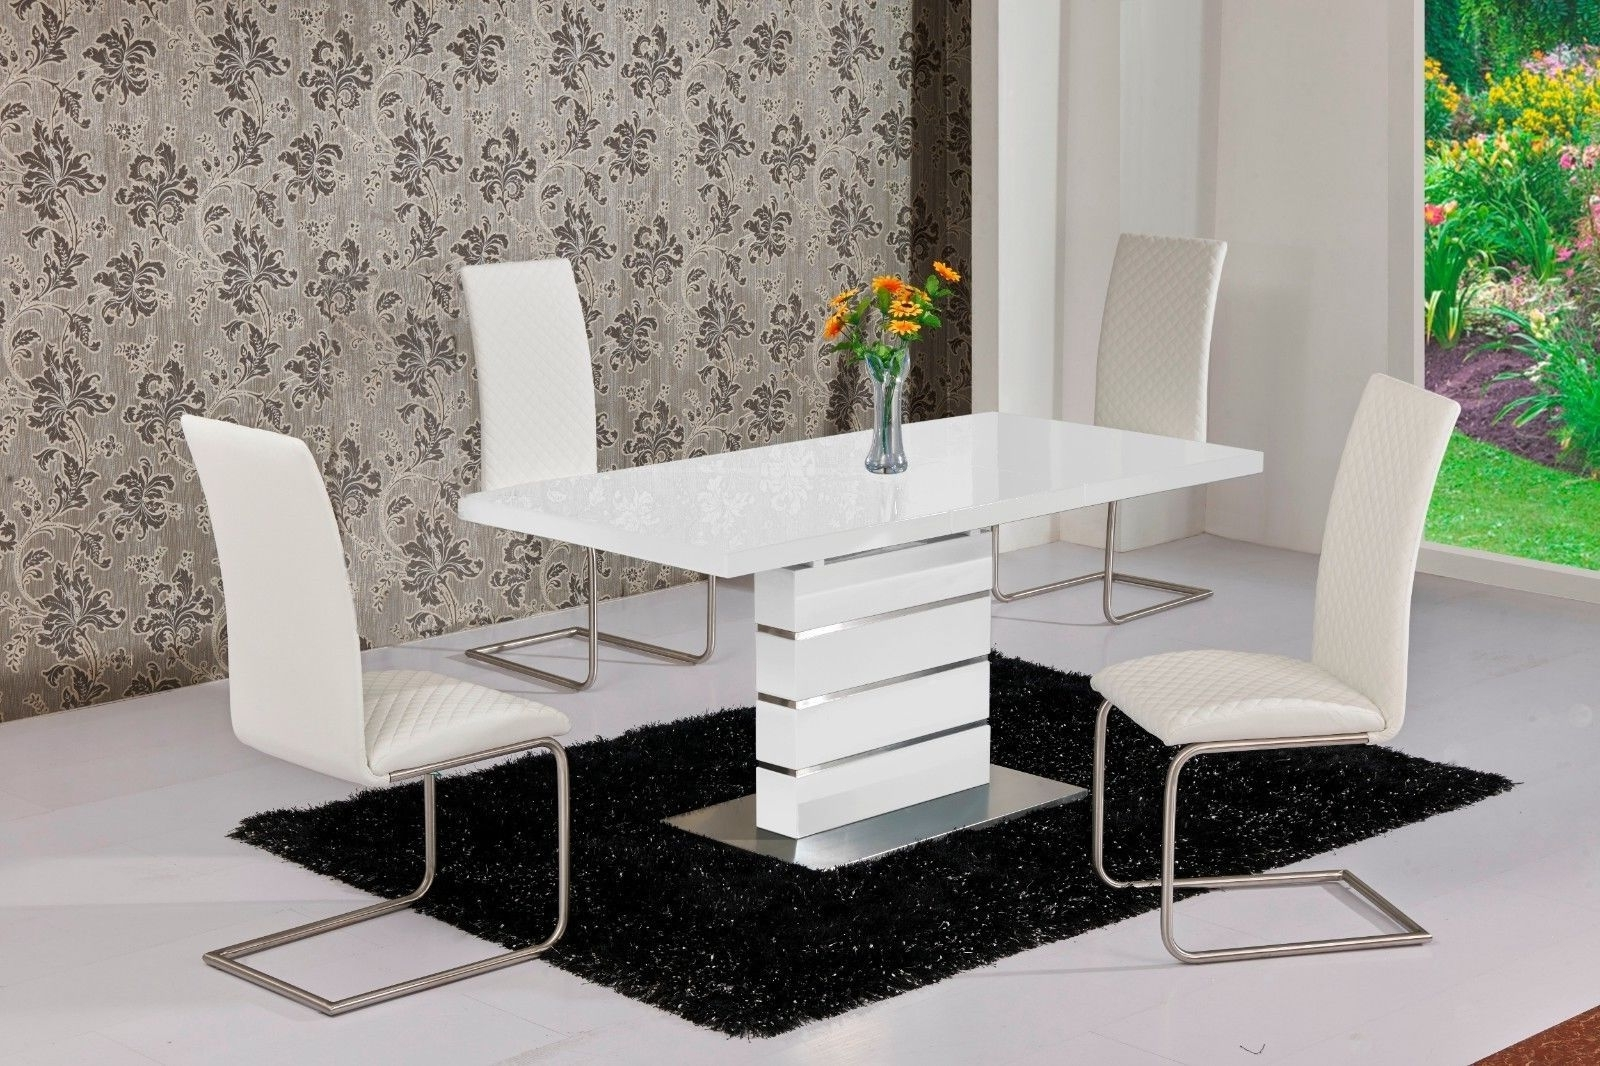 Mace High Gloss Extending 120 160 Dining Table & Chair Set – White Pertaining To Newest Extendable Dining Tables 6 Chairs (View 16 of 25)